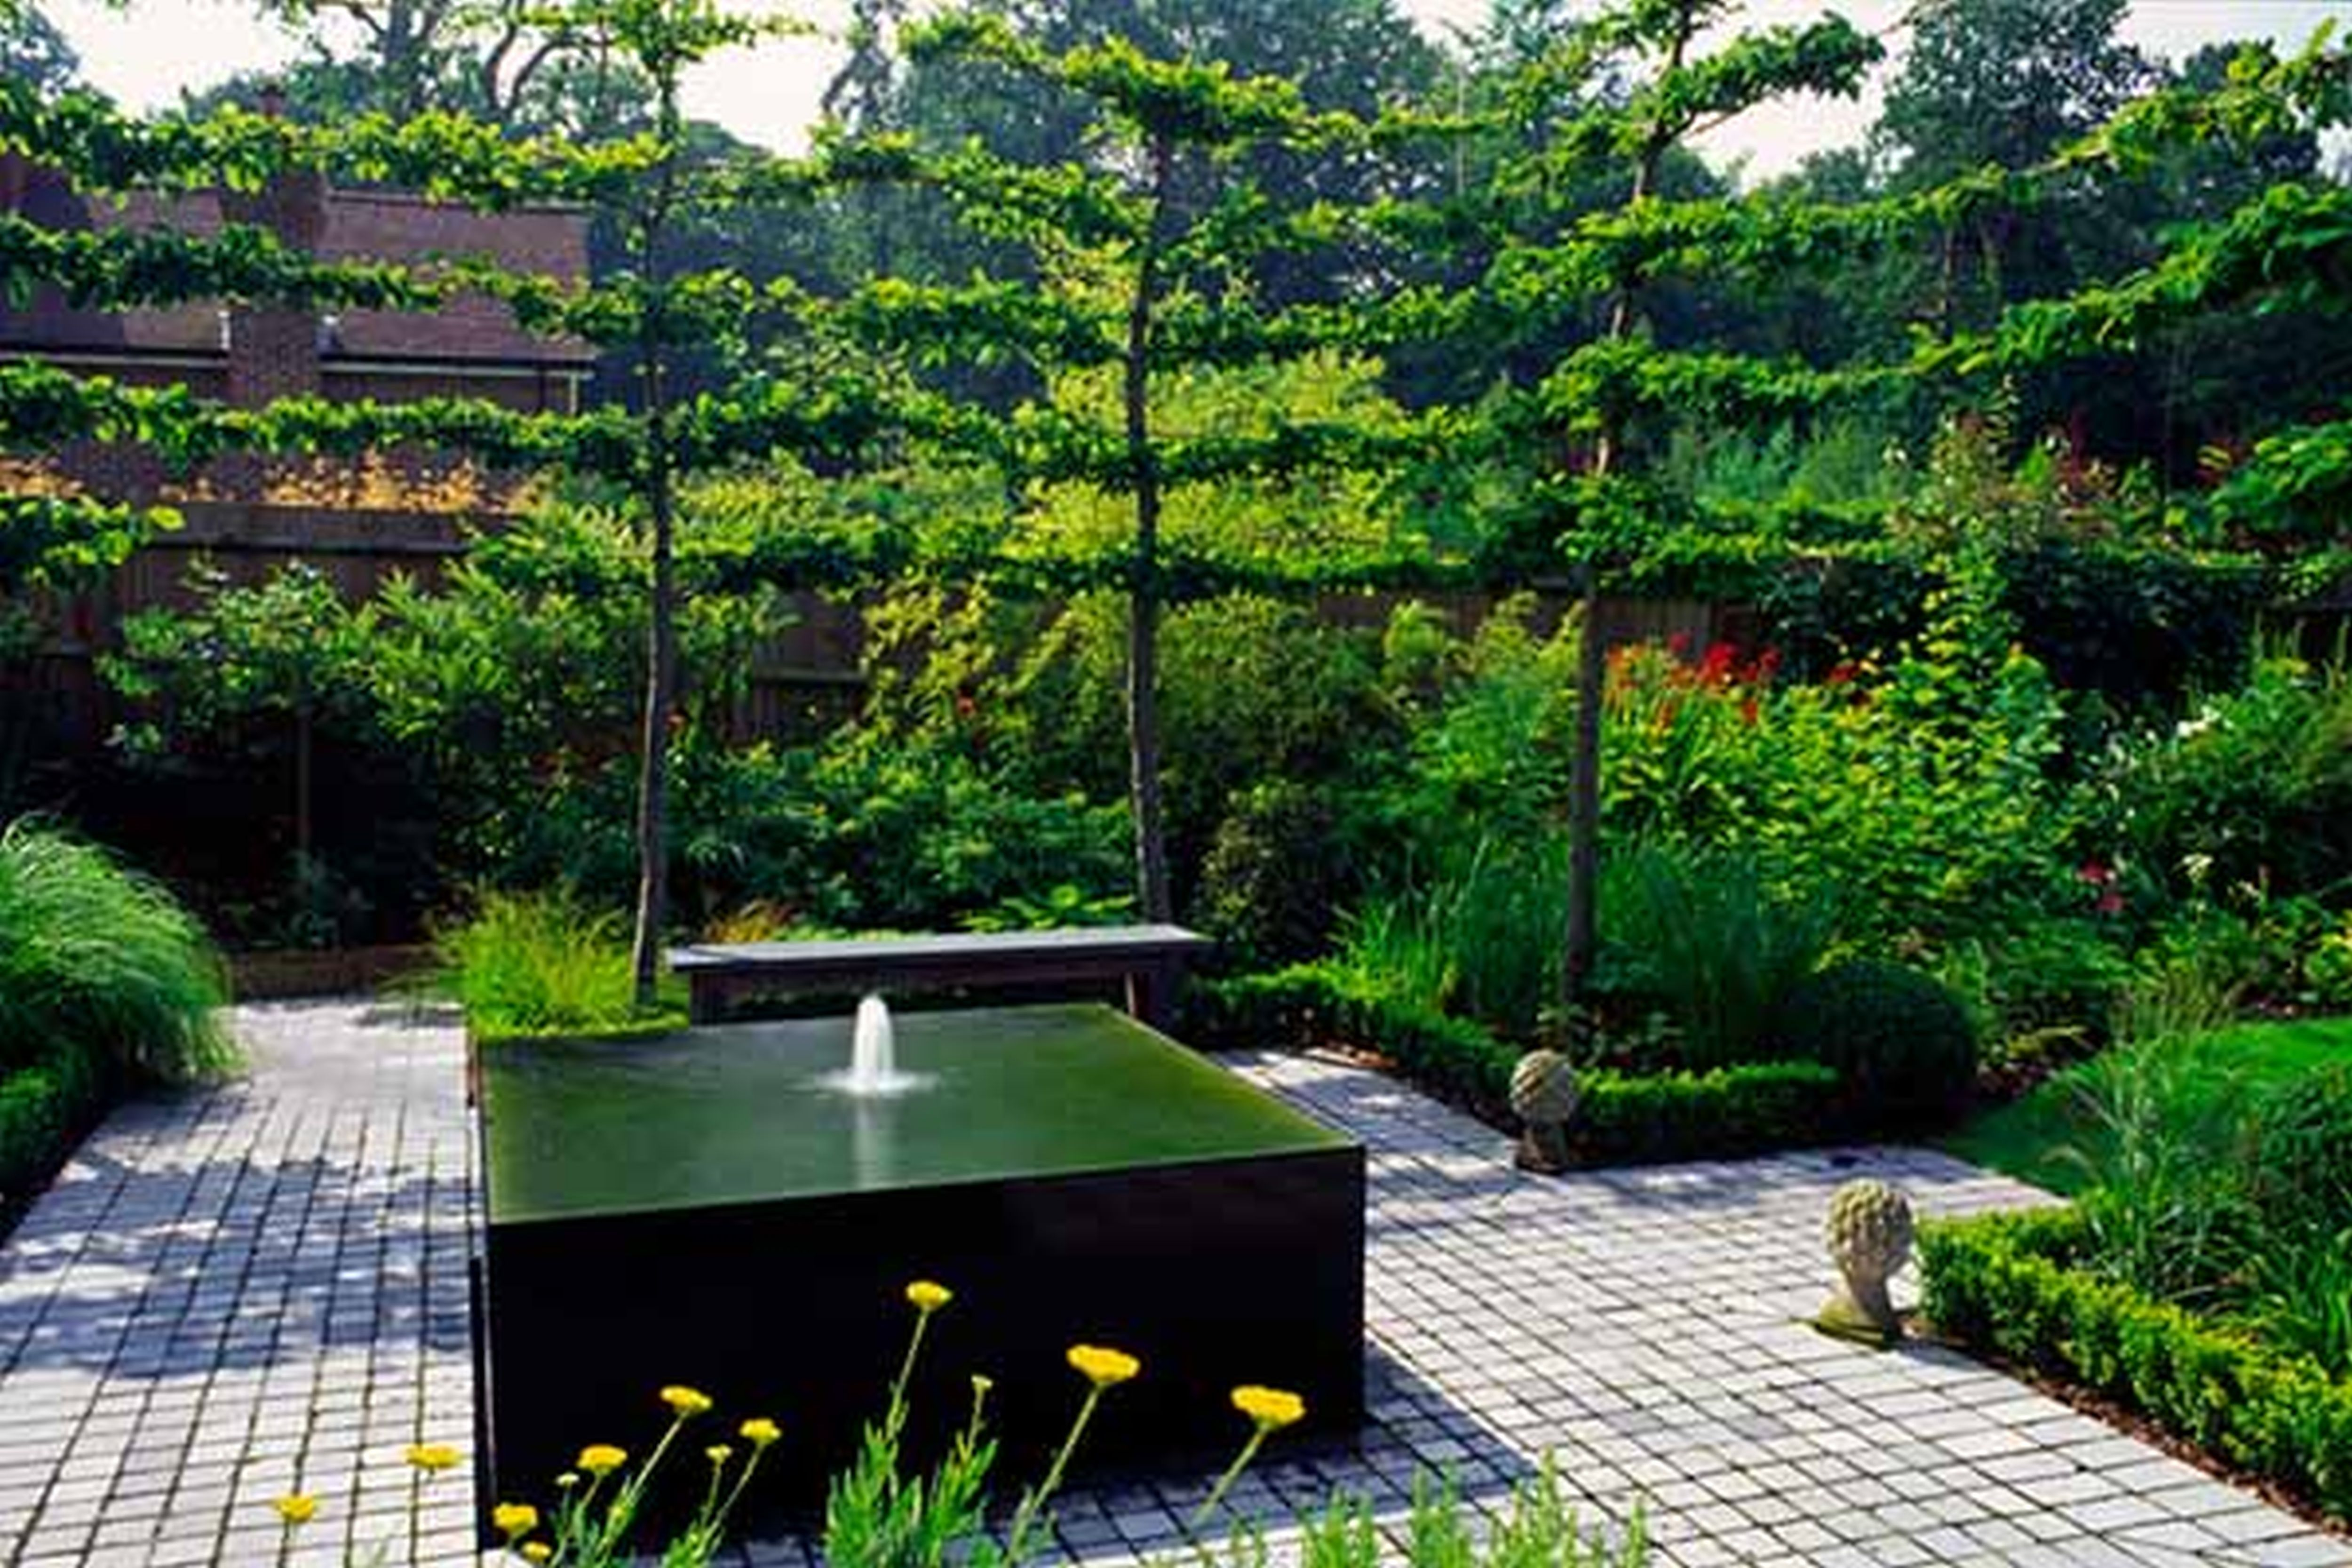 Garden Landscape Design Software Free For Ipad